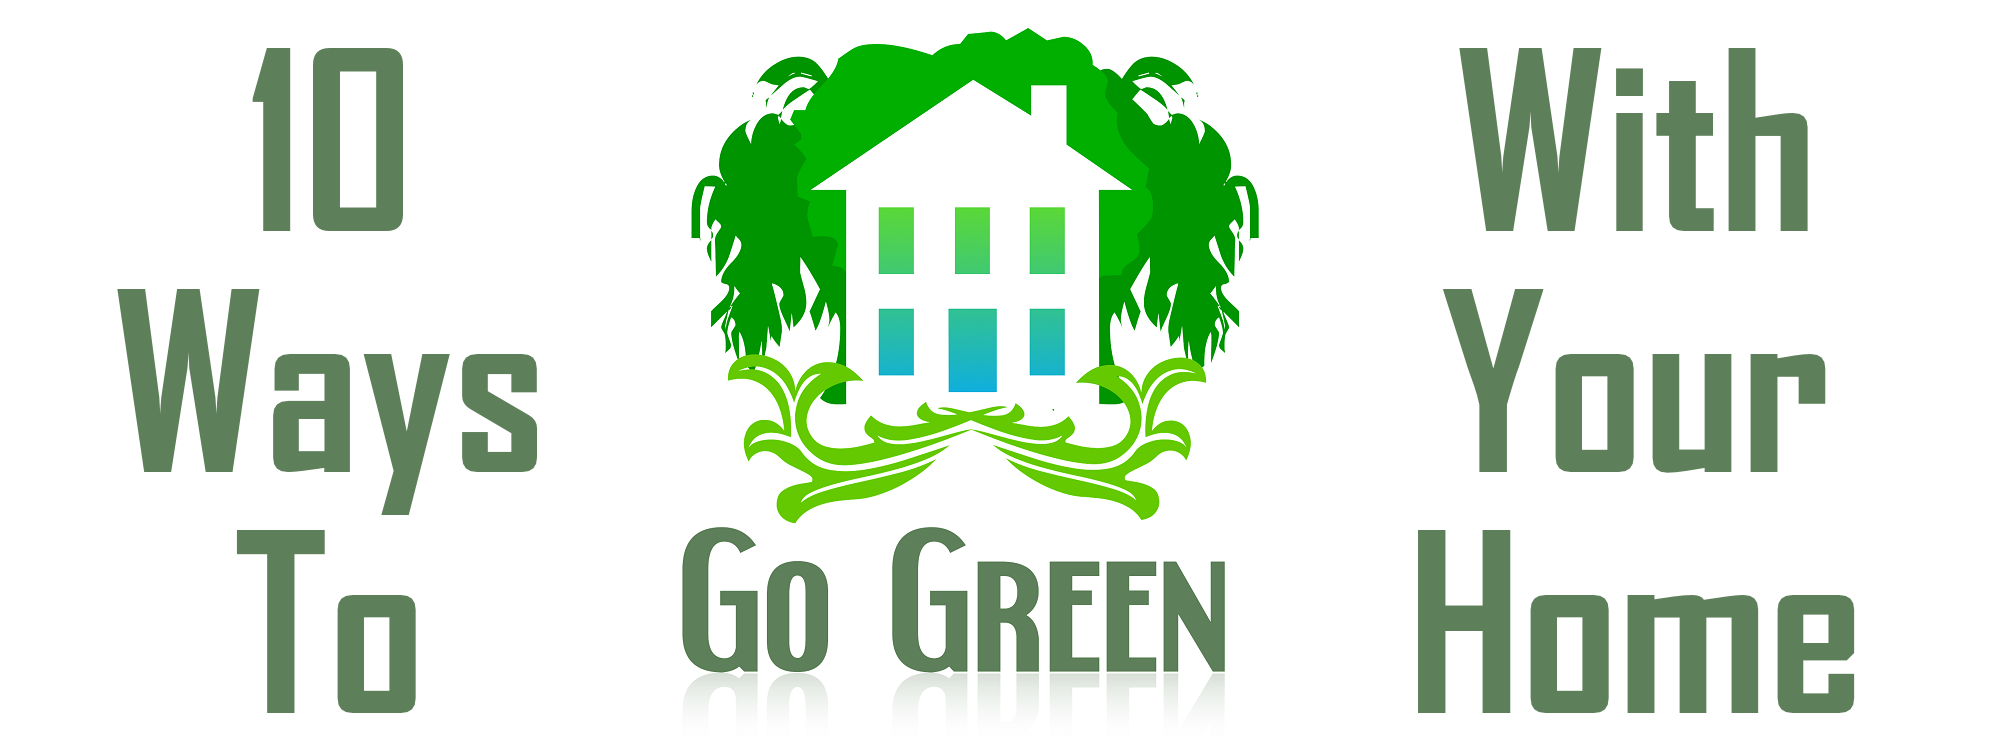 Go green metal roofing Billings Montana